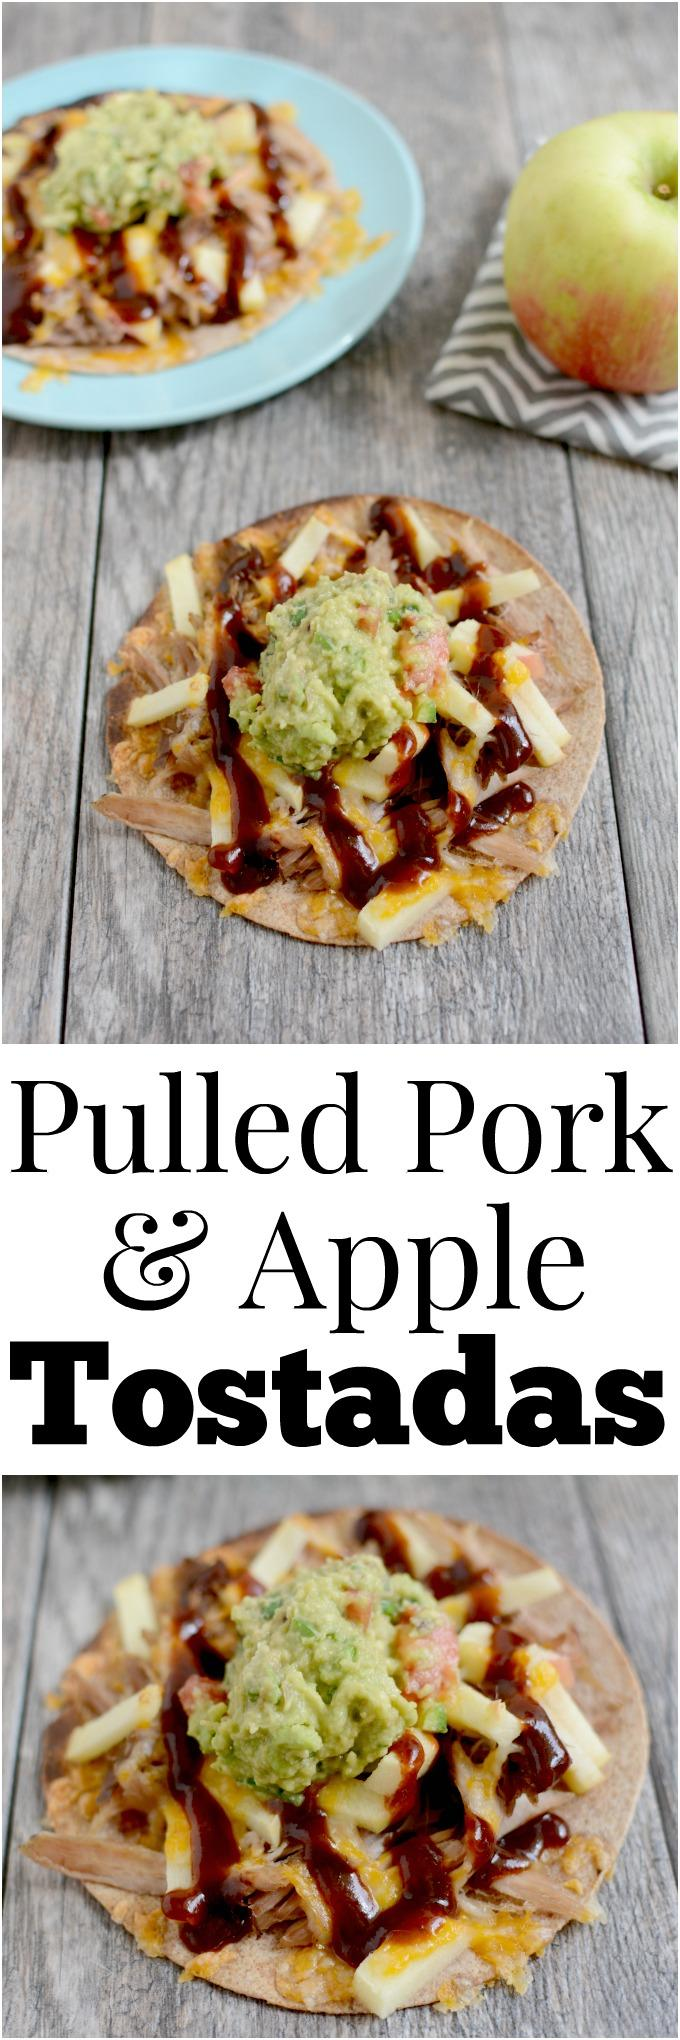 These Pulled Pork and Apple Tostadas are a simple, flavorful way to use up leftover pork. Perfect for lunch, dinner or a quick snack!